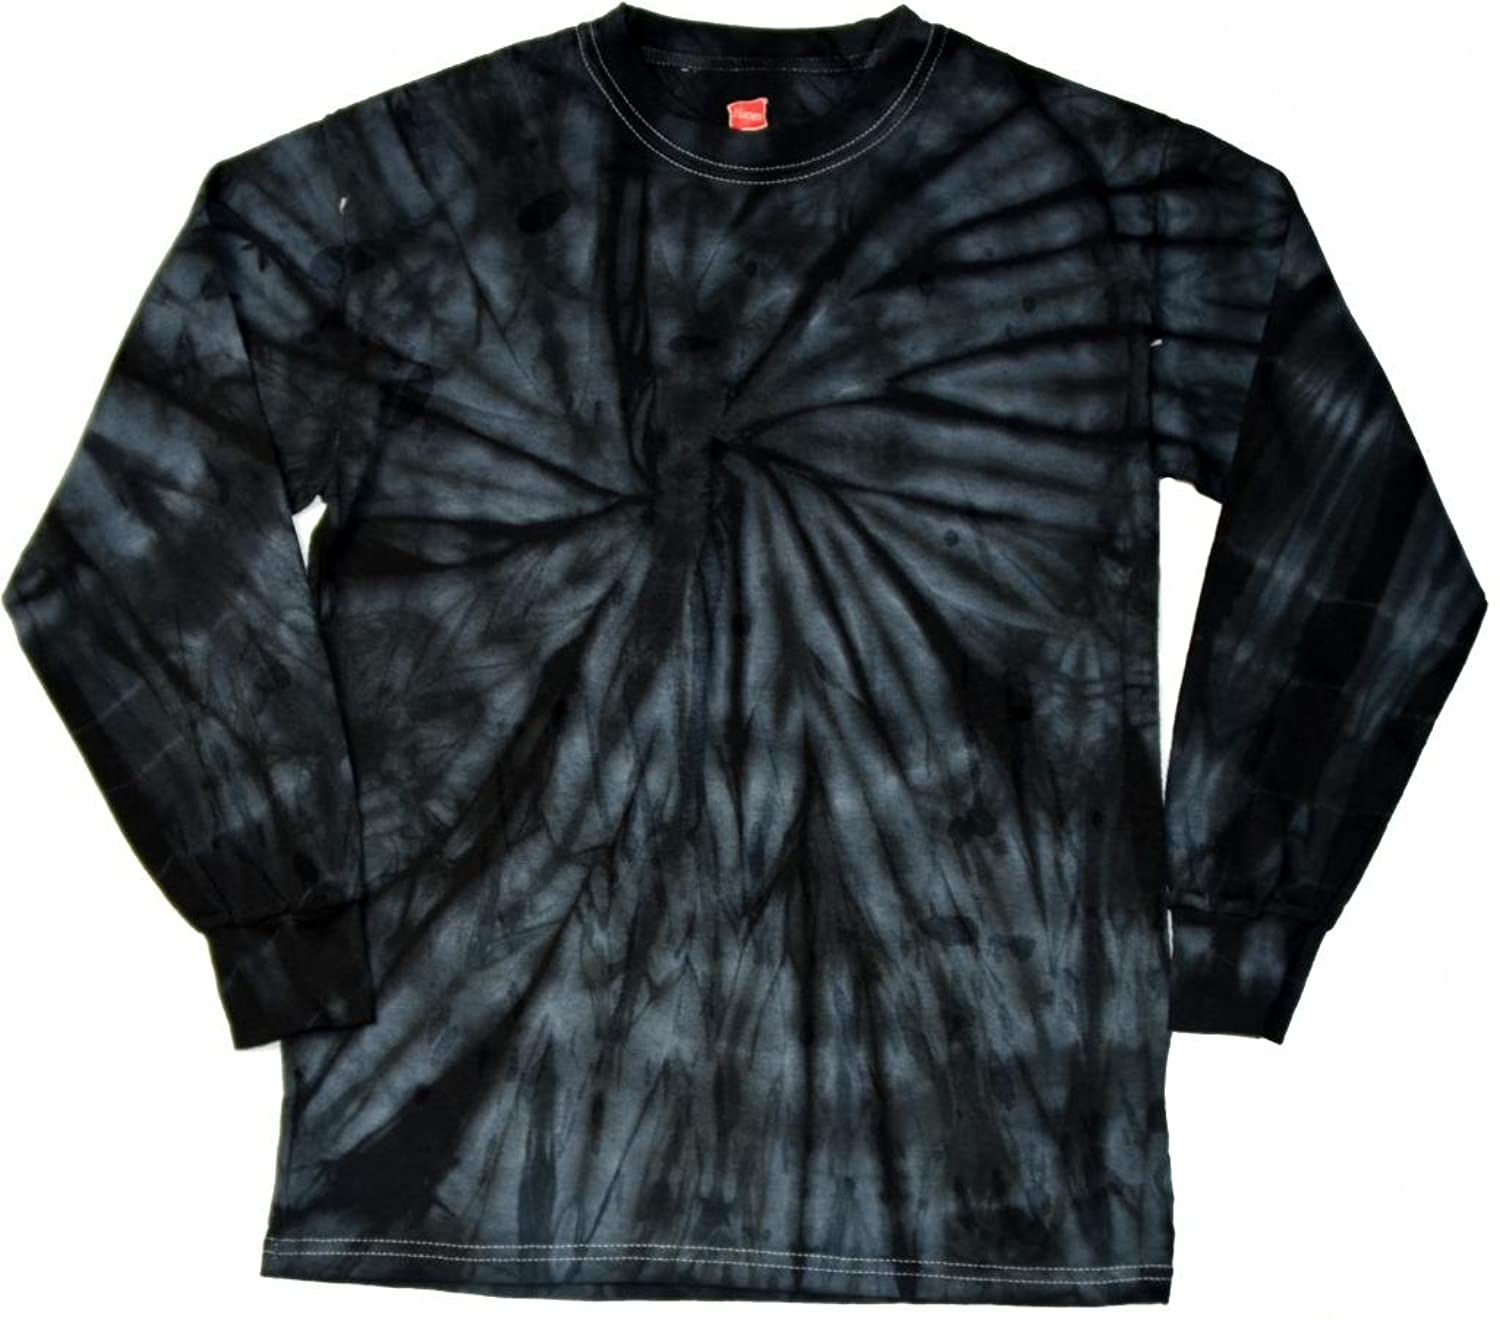 Buy Cool Shirts Mens Tie Dye Shirt Spider Black Long Sleeve T ...